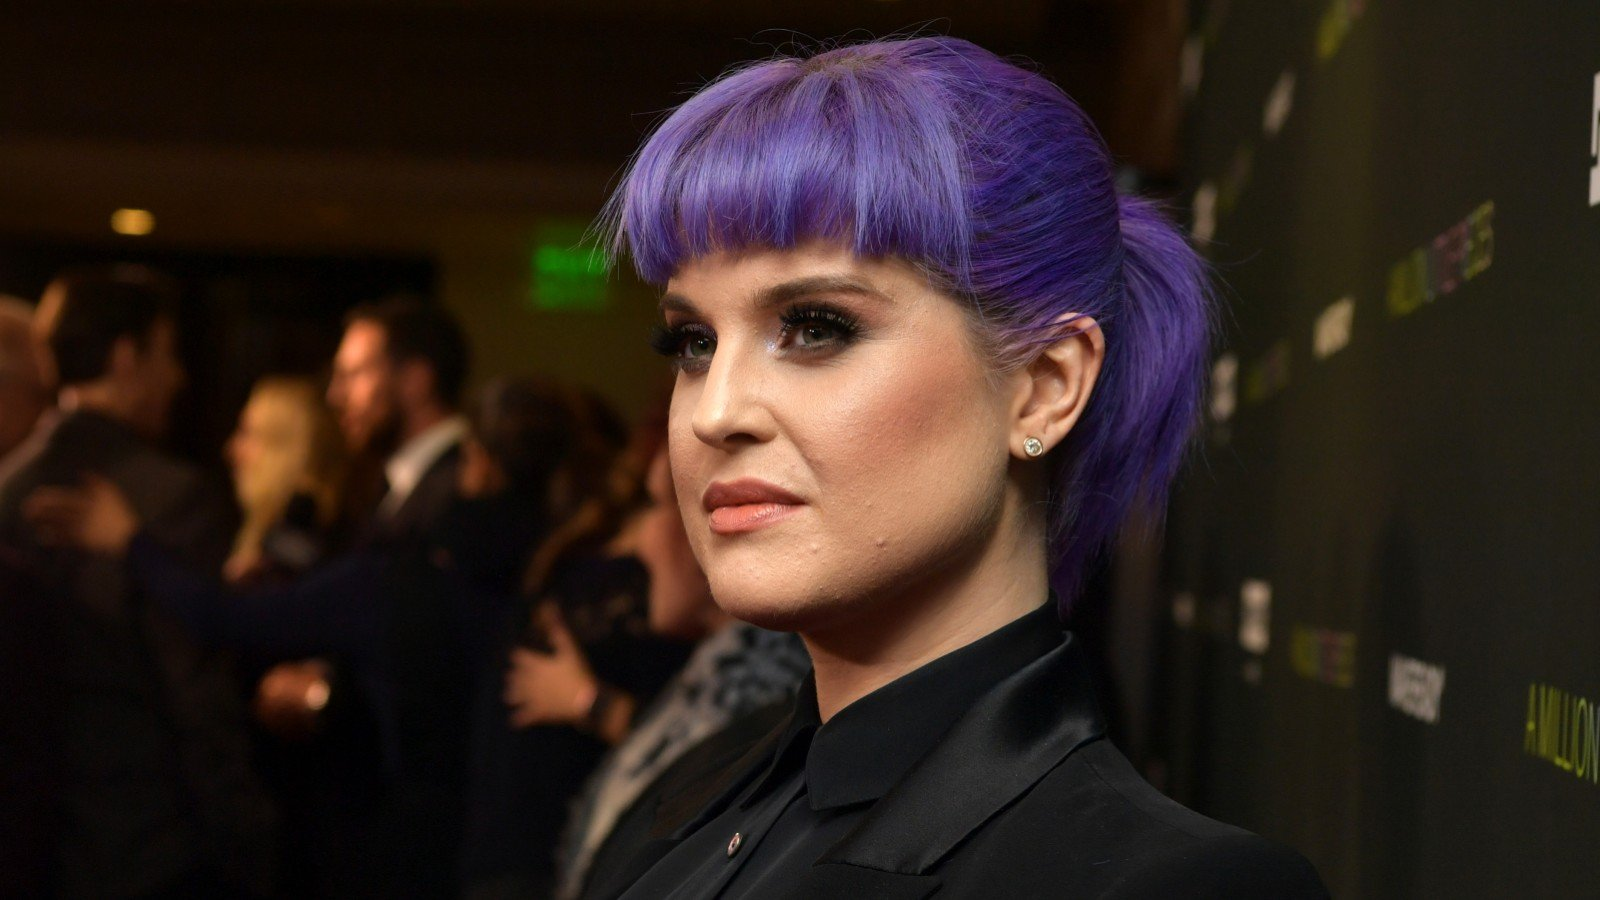 Kelly Osbourne Addresses The Rumors That Family Reality Show 'The